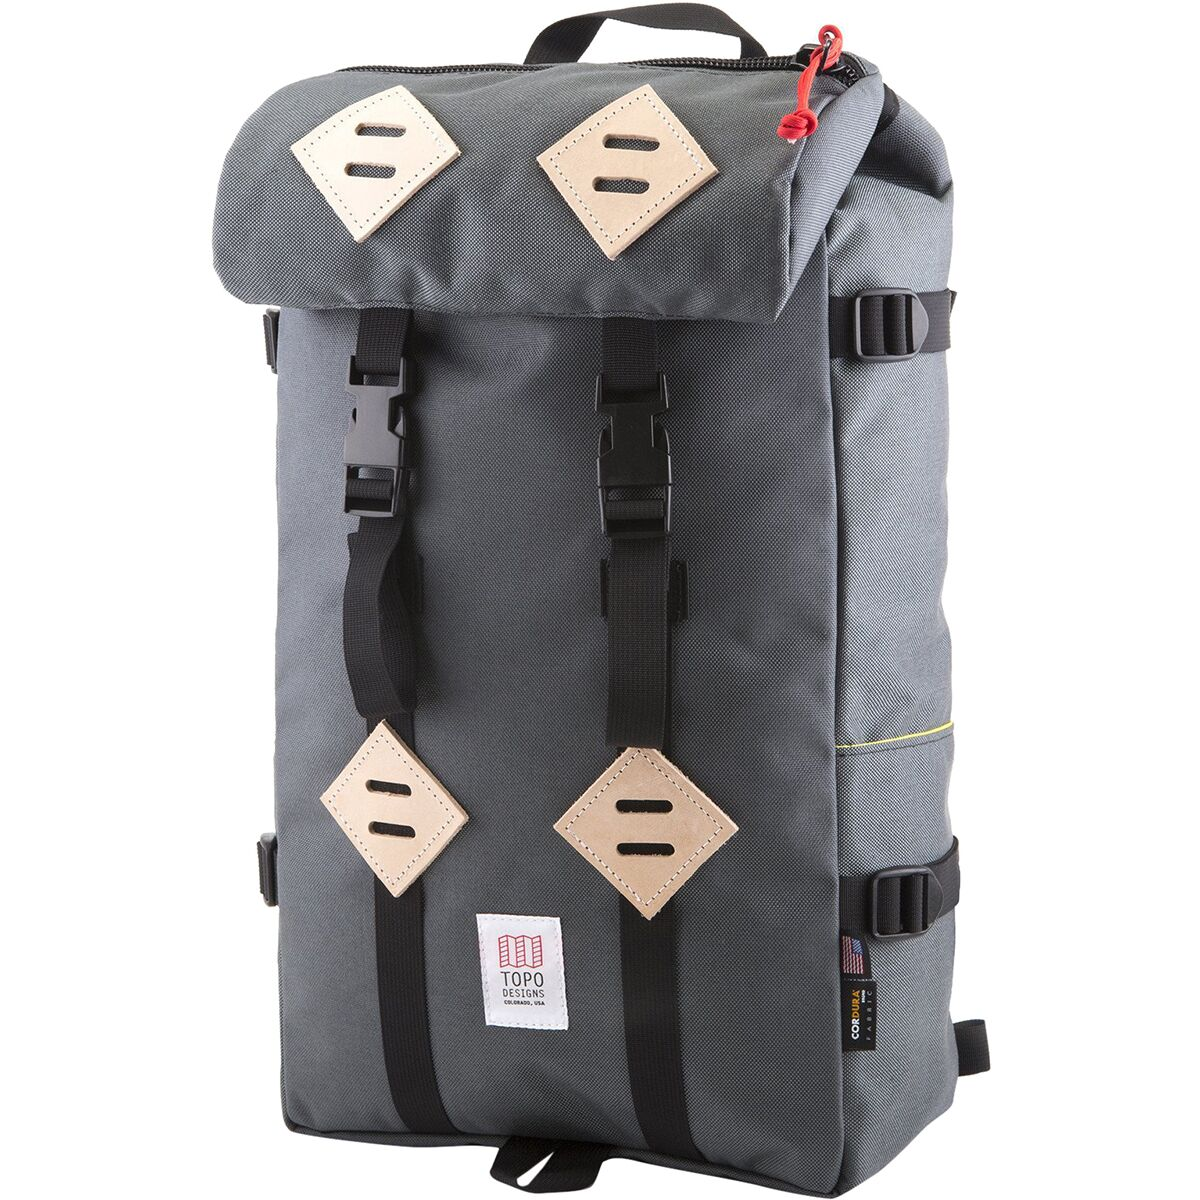 Topo Designs Klettersack 22L Backpack Charcoal One Size  169.00 The Topo  Designs Klettersack Backpack may look like it just stepped out of a Norman  Rockwell ... eb550d343a047